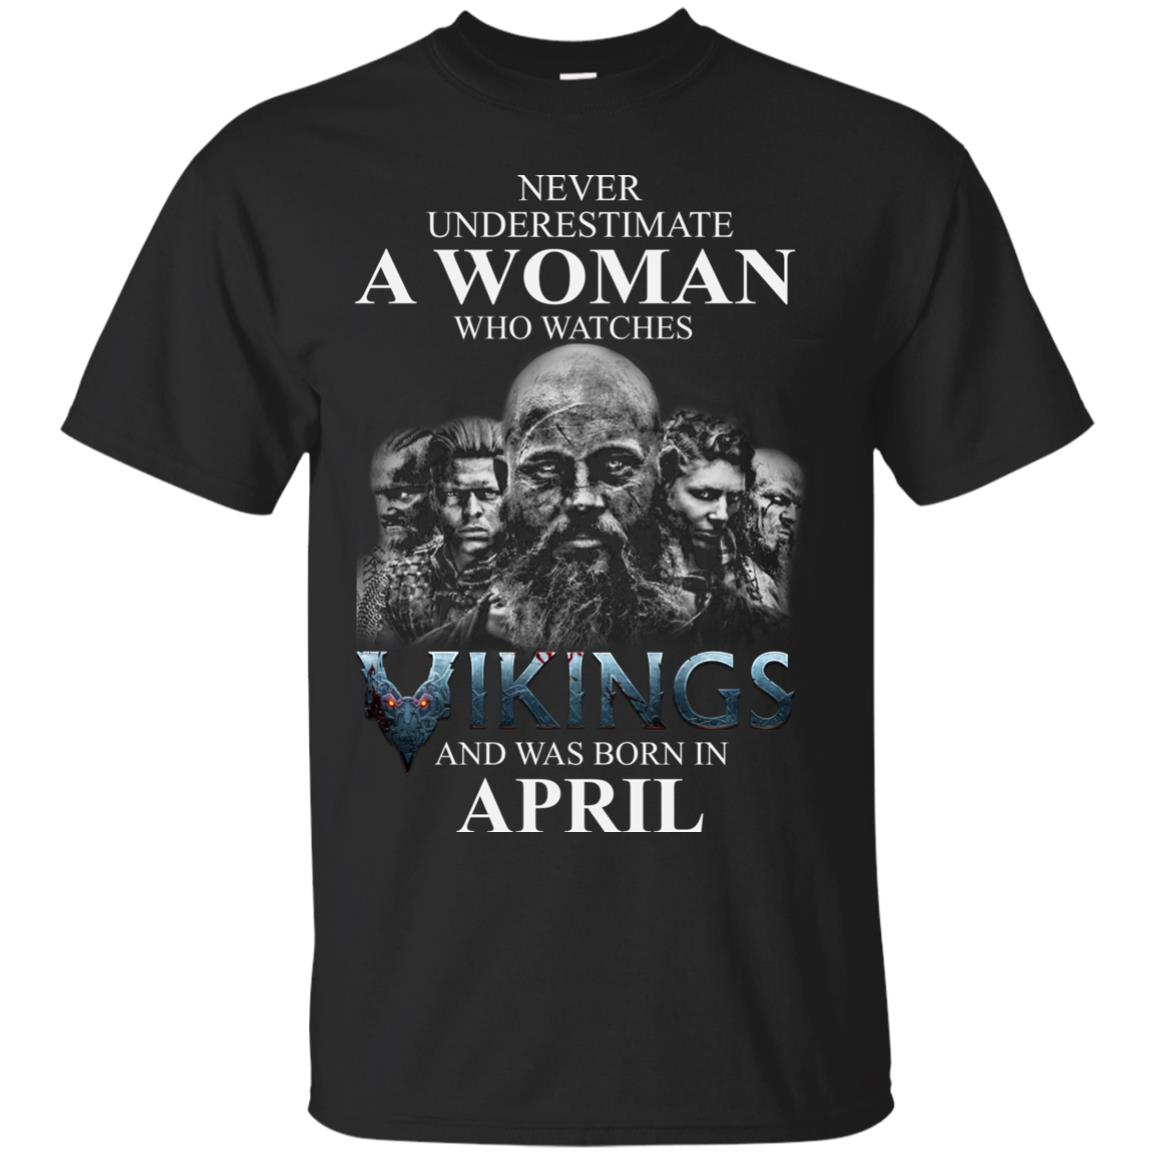 image 1315 - Never Underestimate A woman who watches Vikings and was born in April shirt